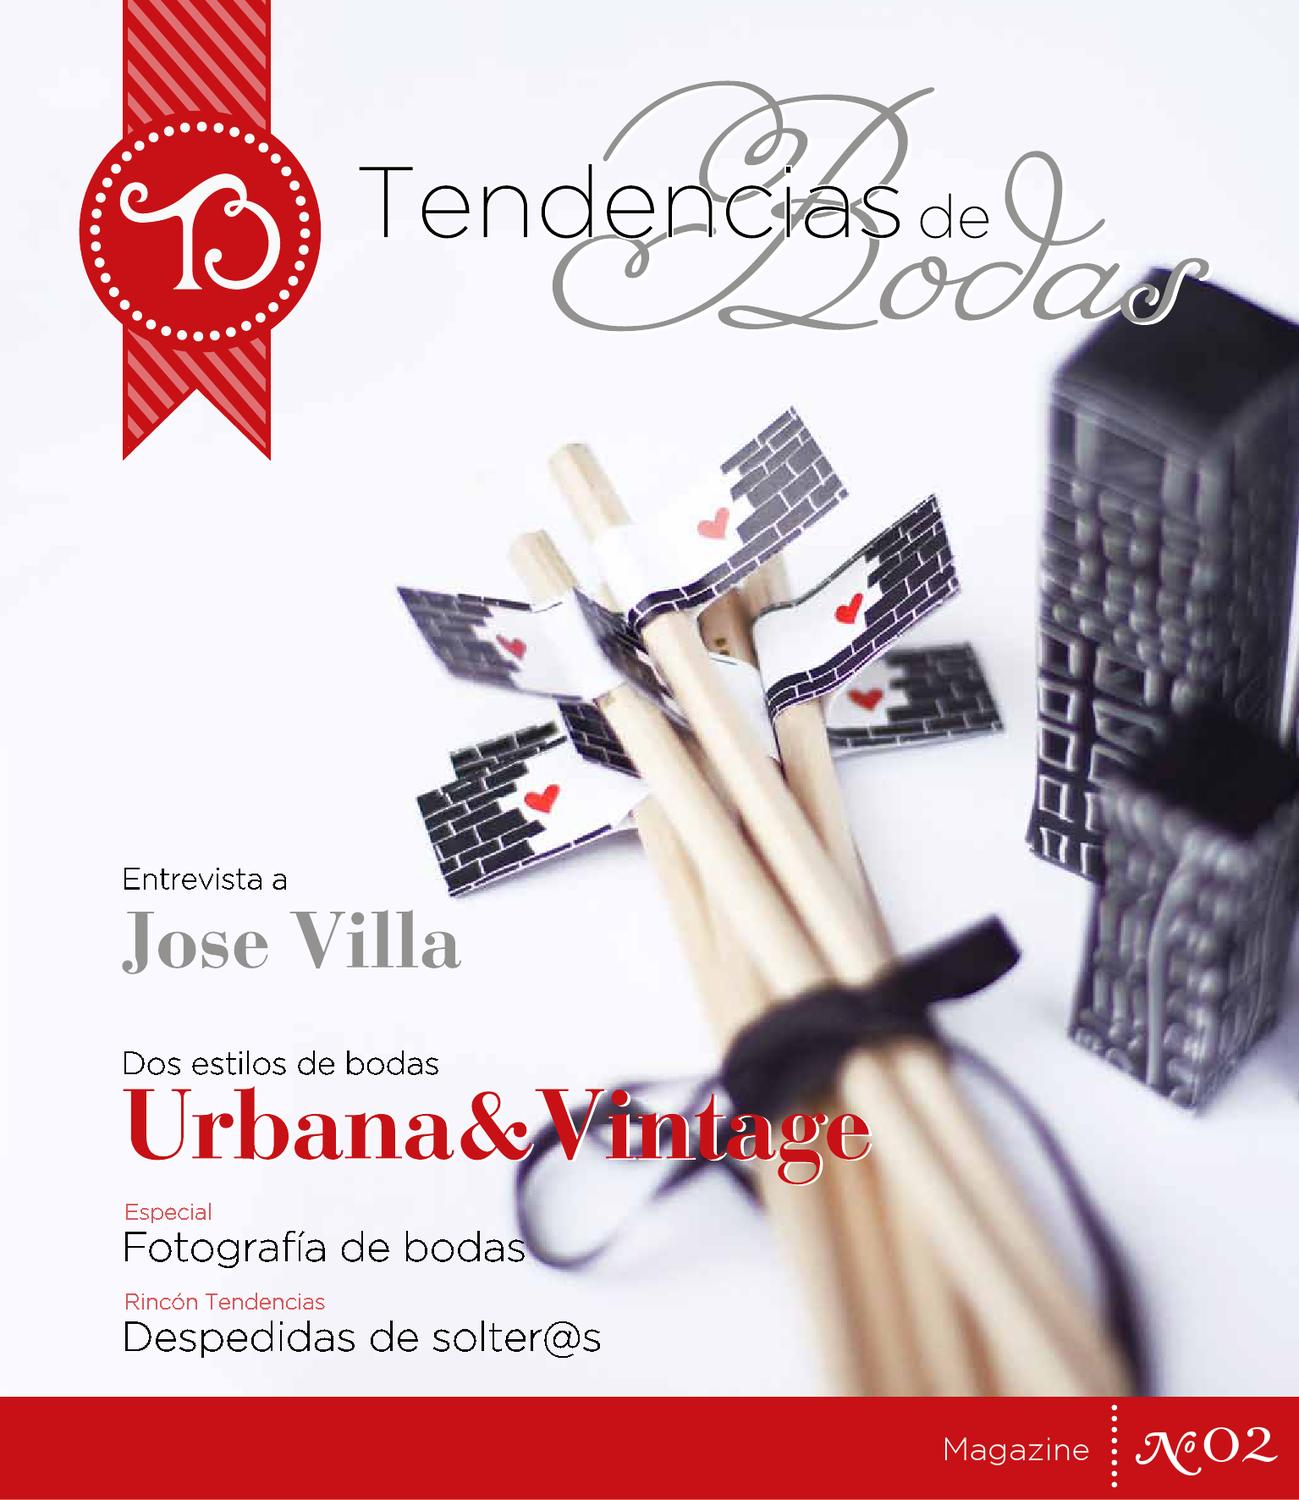 Nº02 Tendencias de Bodas Magazine (Oct 11) by Tendencias de Bodas - issuu 15b31d8805b